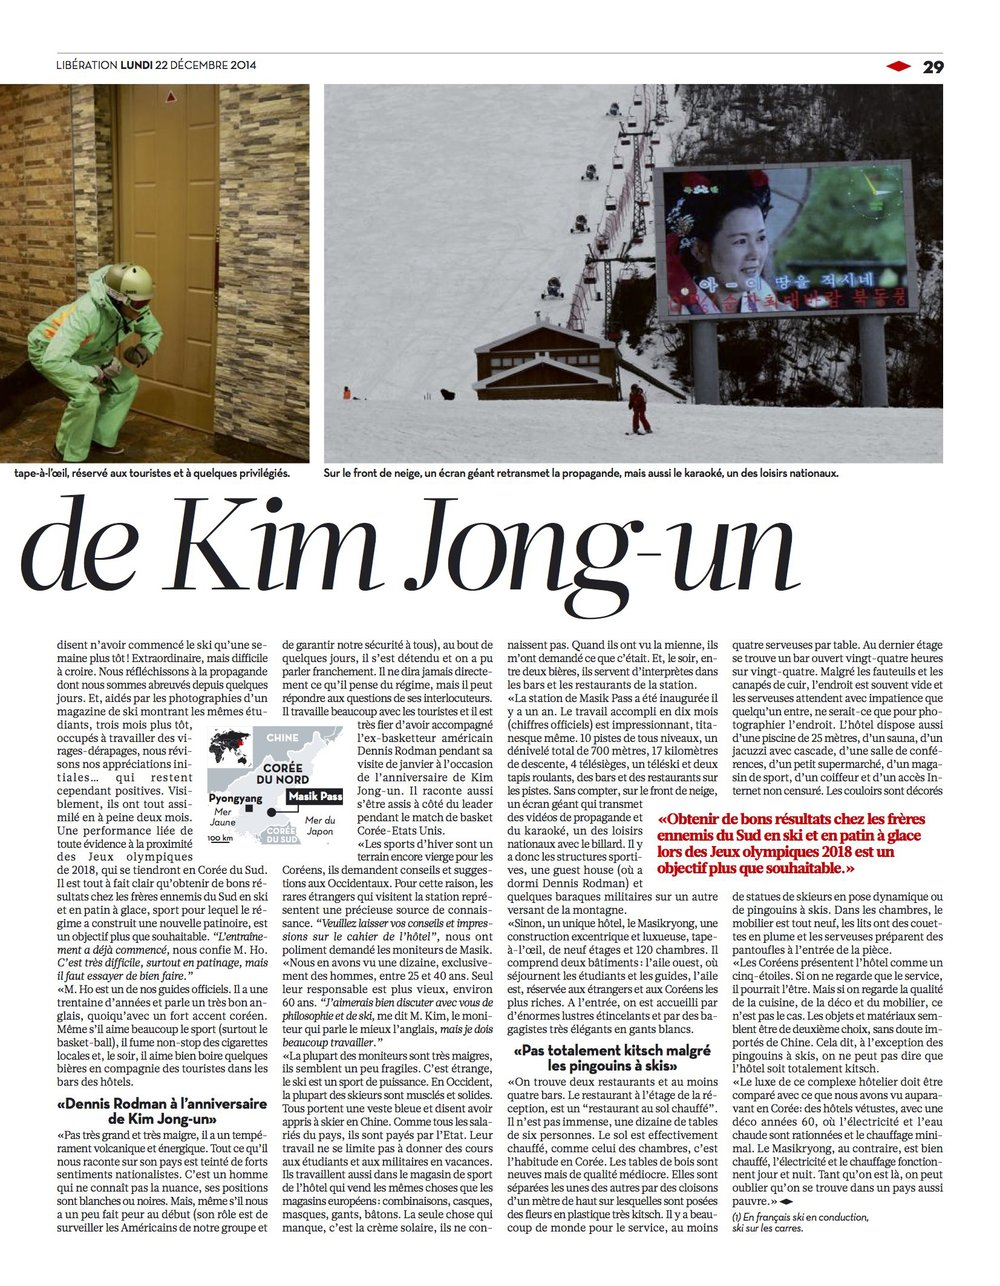 Libération (FRA). Ski in North Korea. 26-12-14